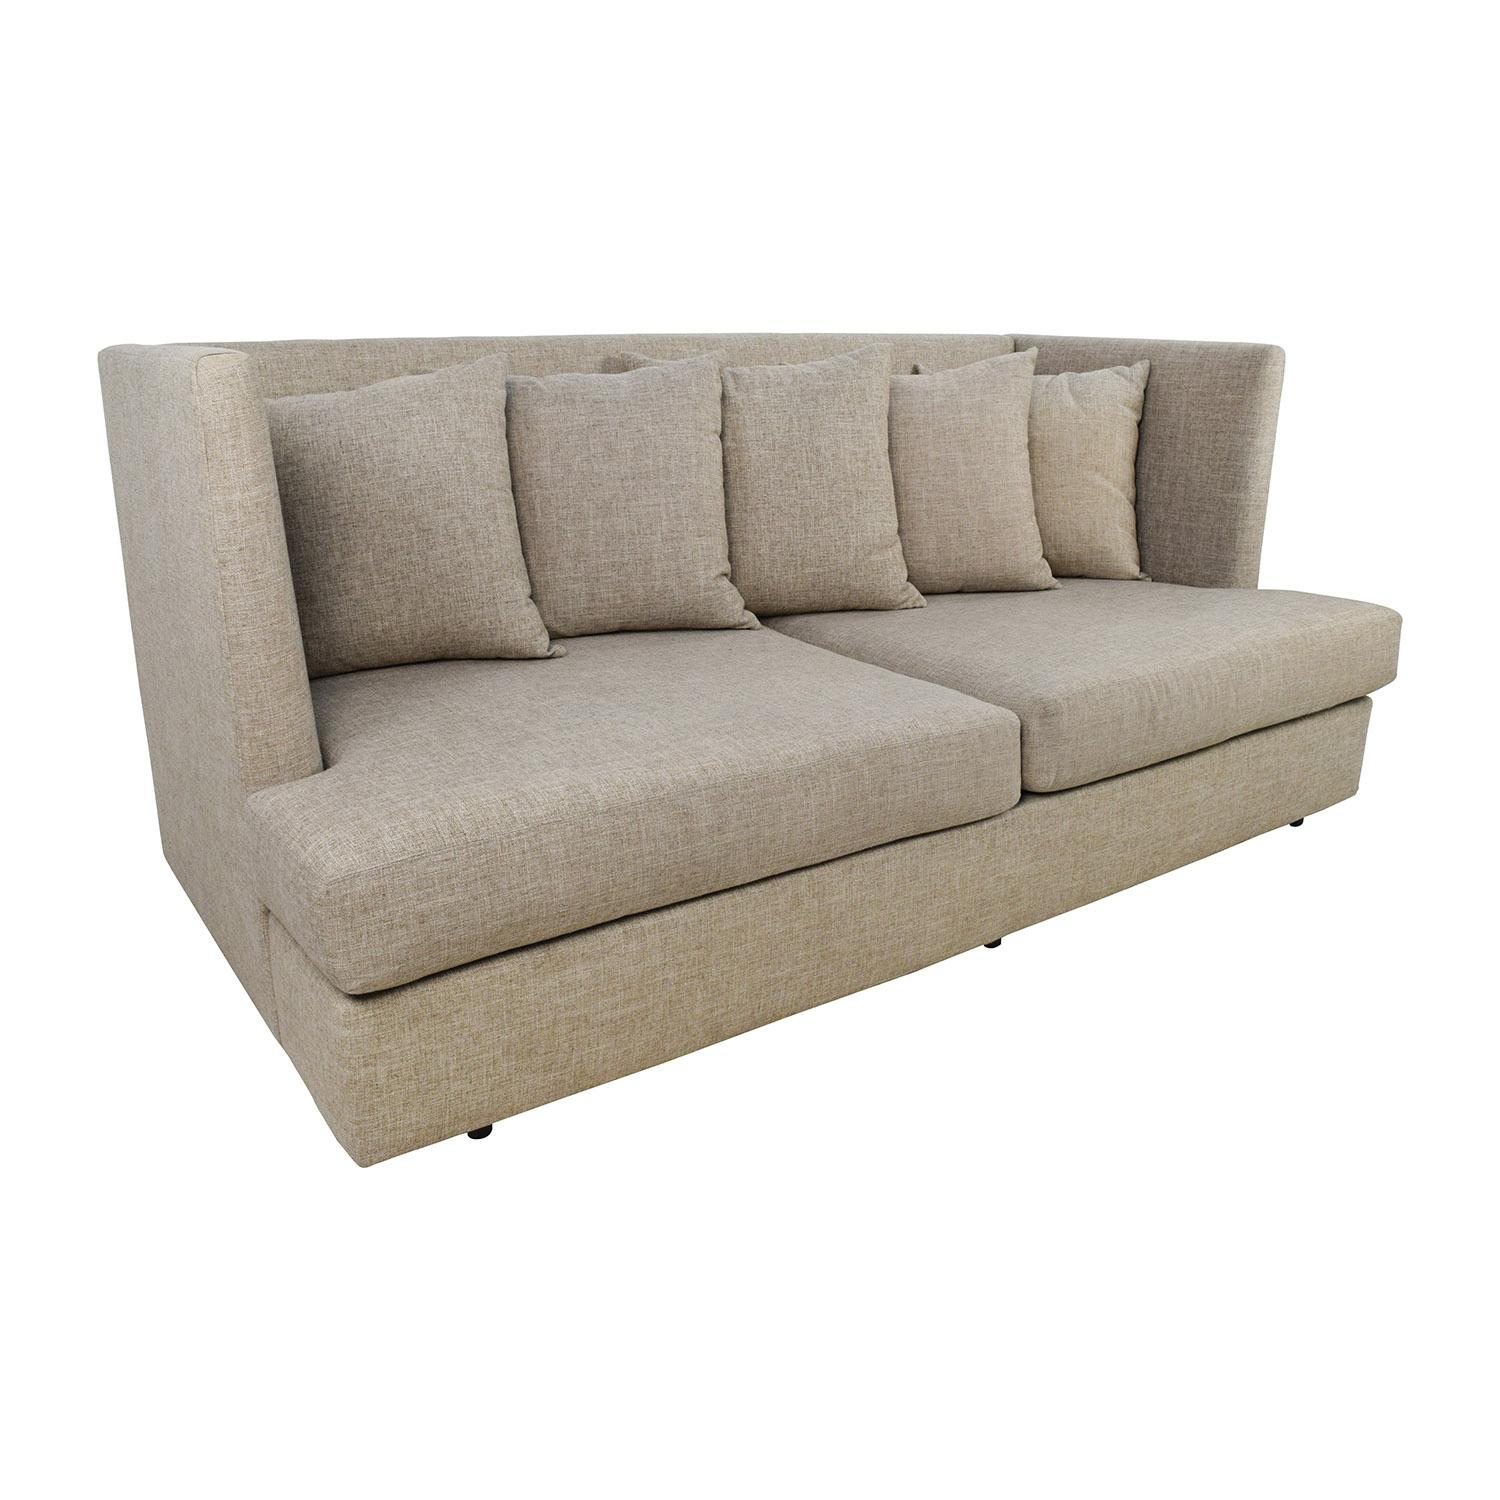 34  off  u2013 crate and barrel crate  u0026 barrel shelter beige couch   sofas intended sofa ideas  crate and barrel futon sofas  explore  14 of 20 photos   rh   tany